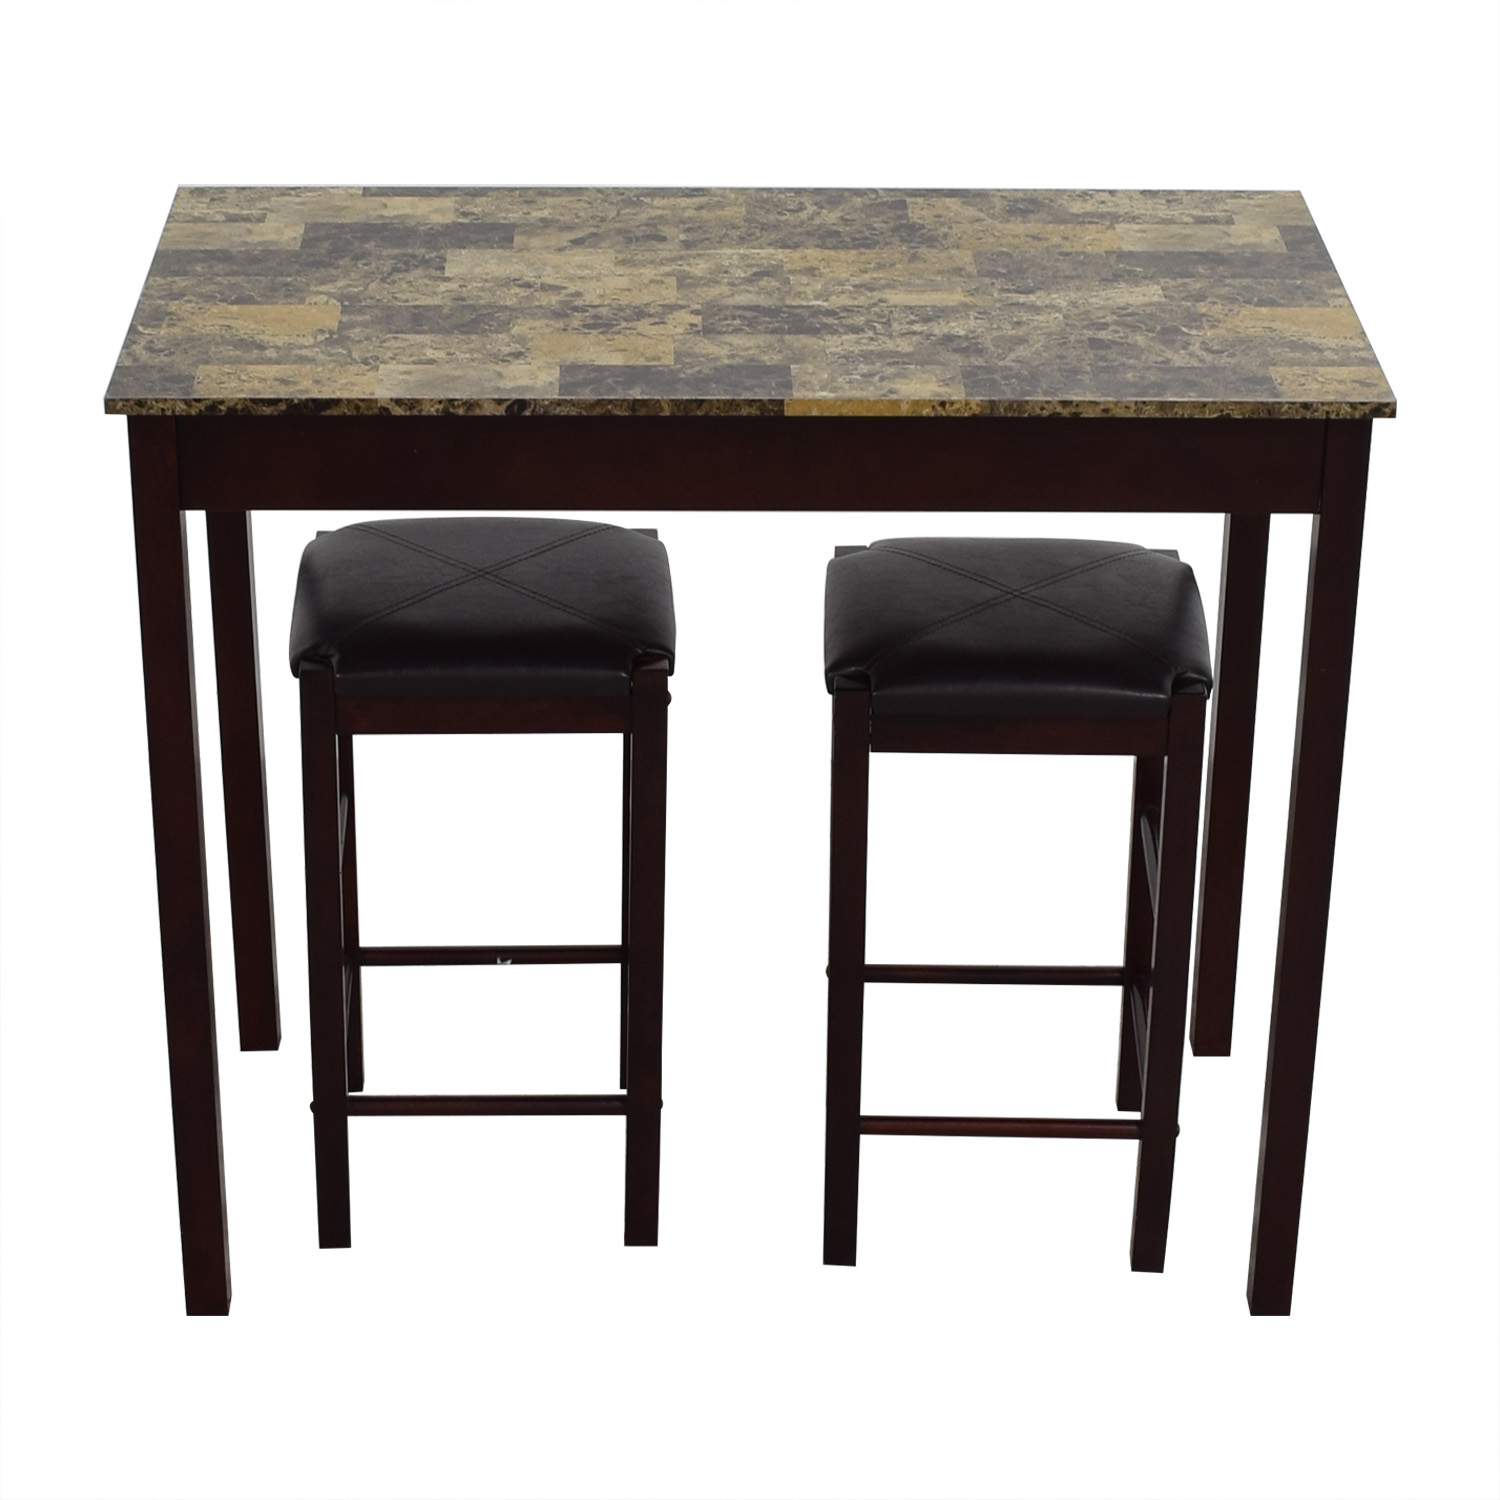 buy Linon Home Decor Tavern Marble Table and Stools Linon Home Decor Dining Sets